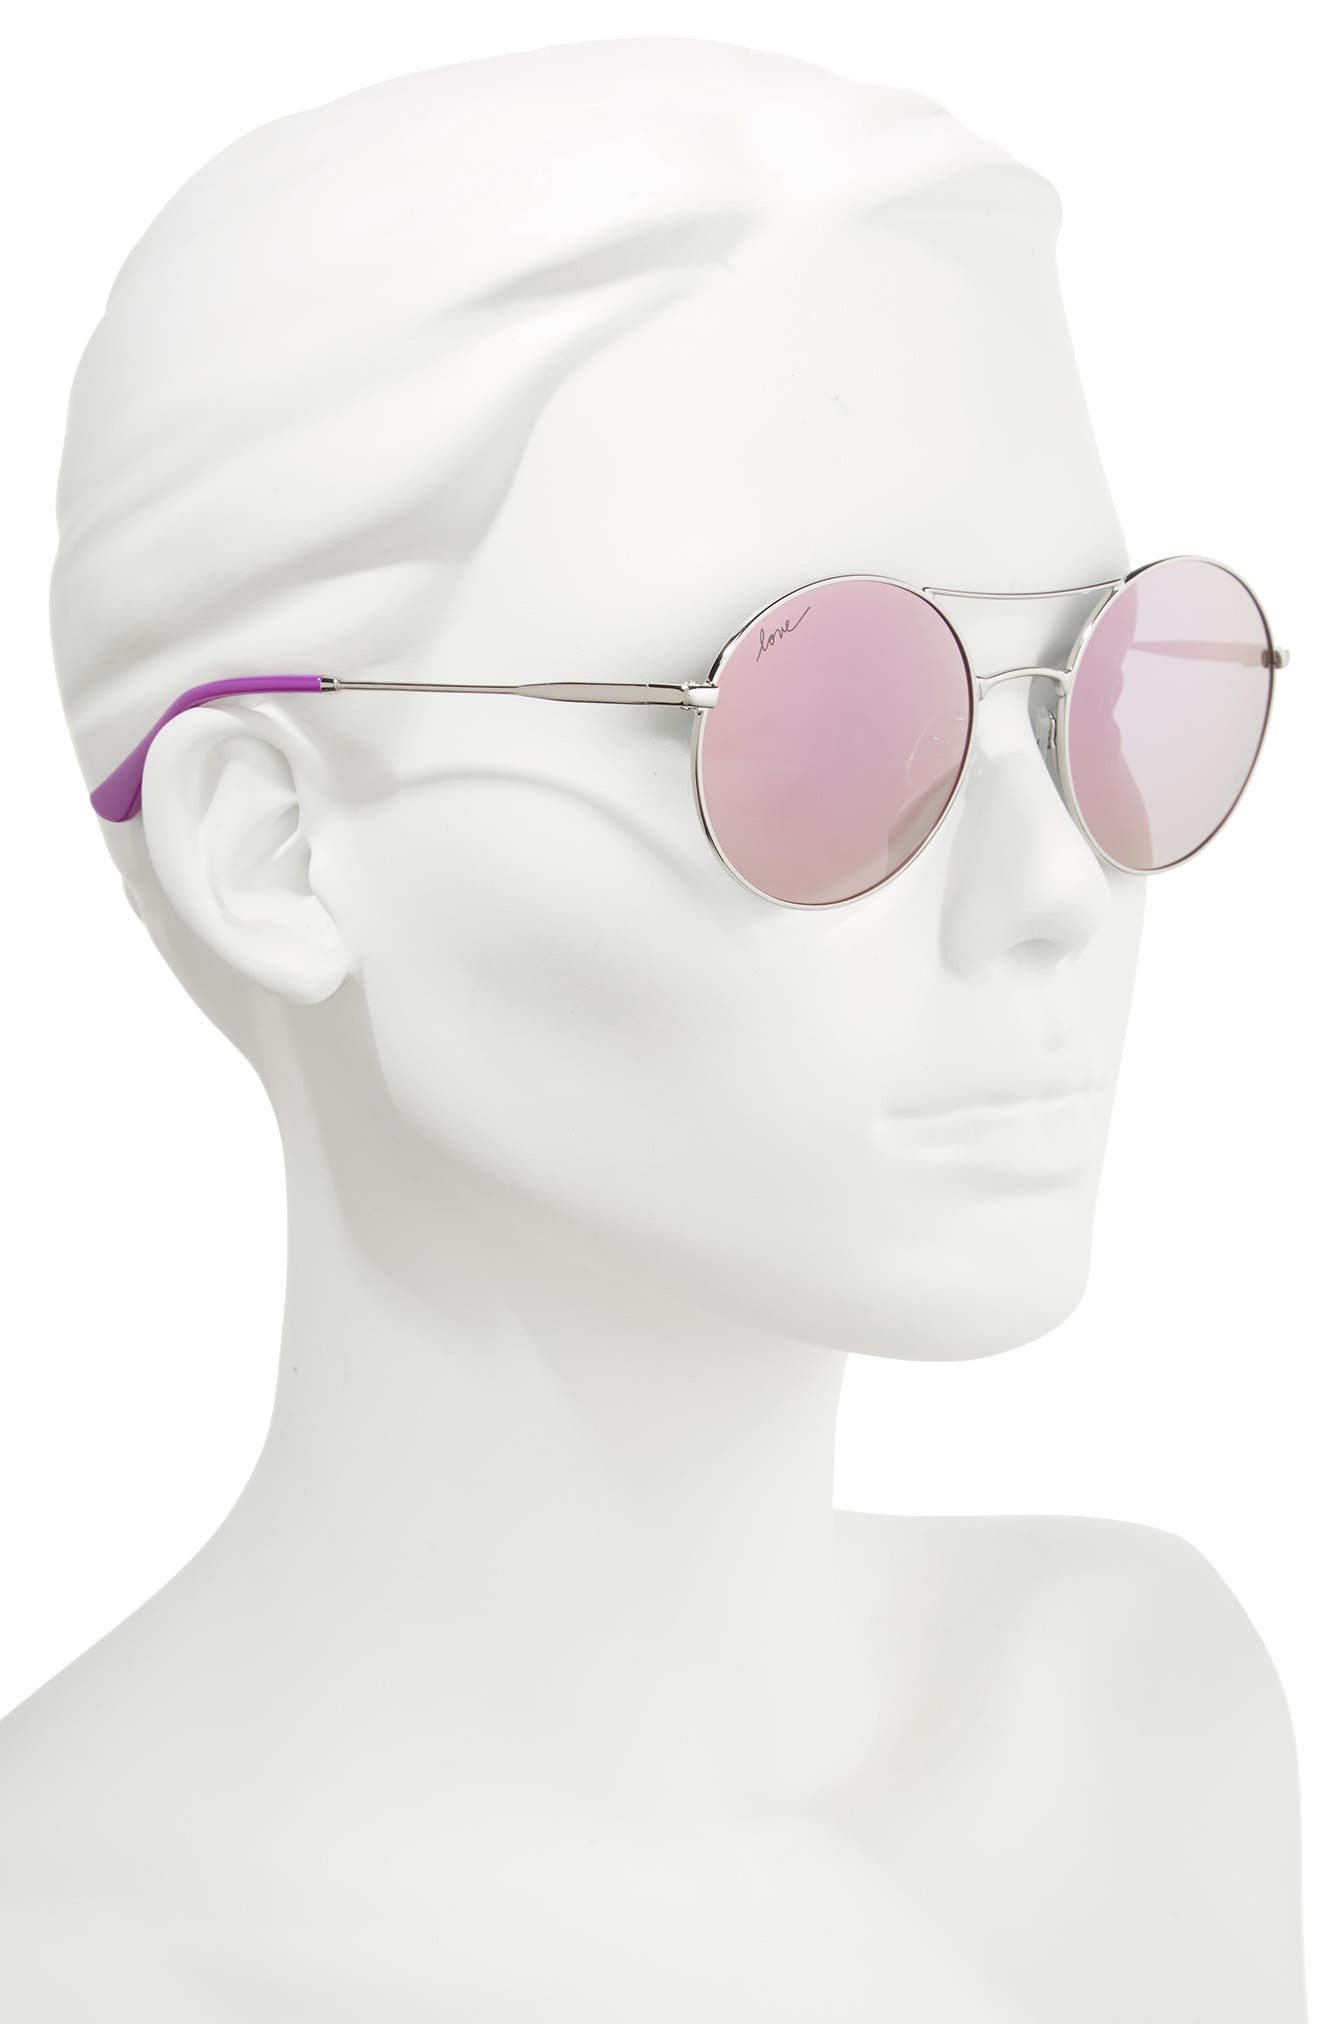 55mm Round Sunglasses,                             Alternate thumbnail 2, color,                             SILVER